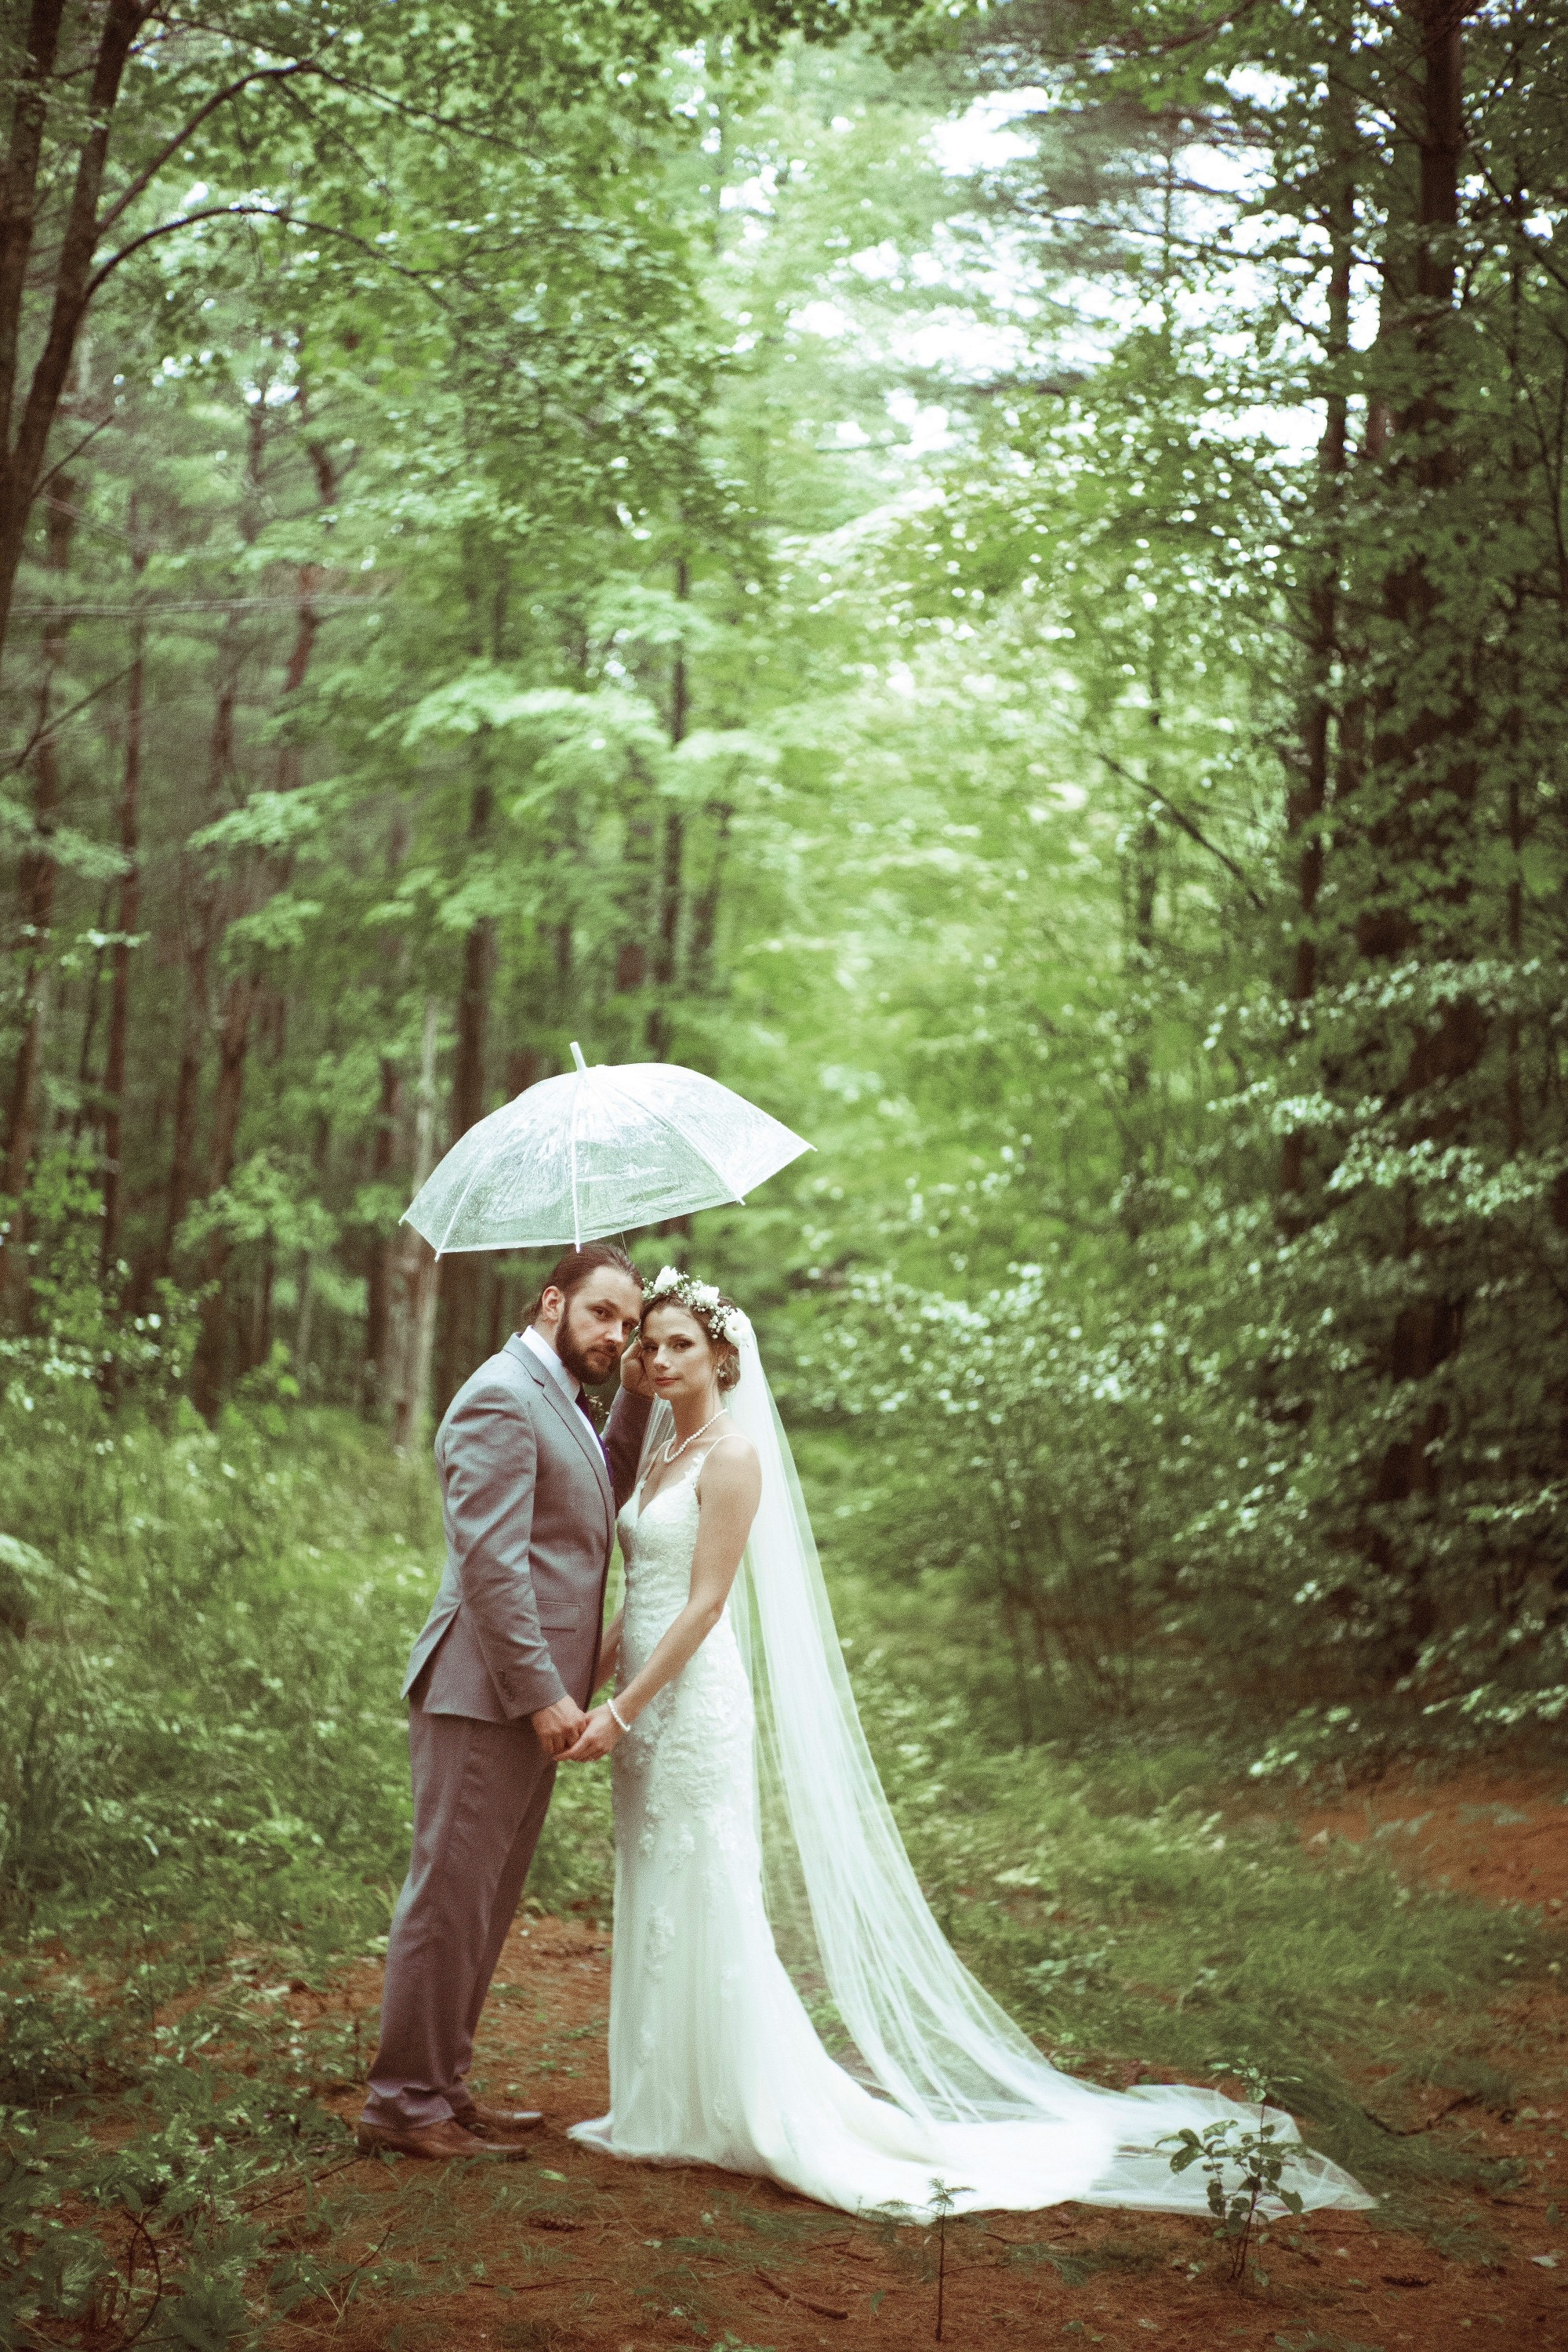 mike lupine photography weddings (18).jpg